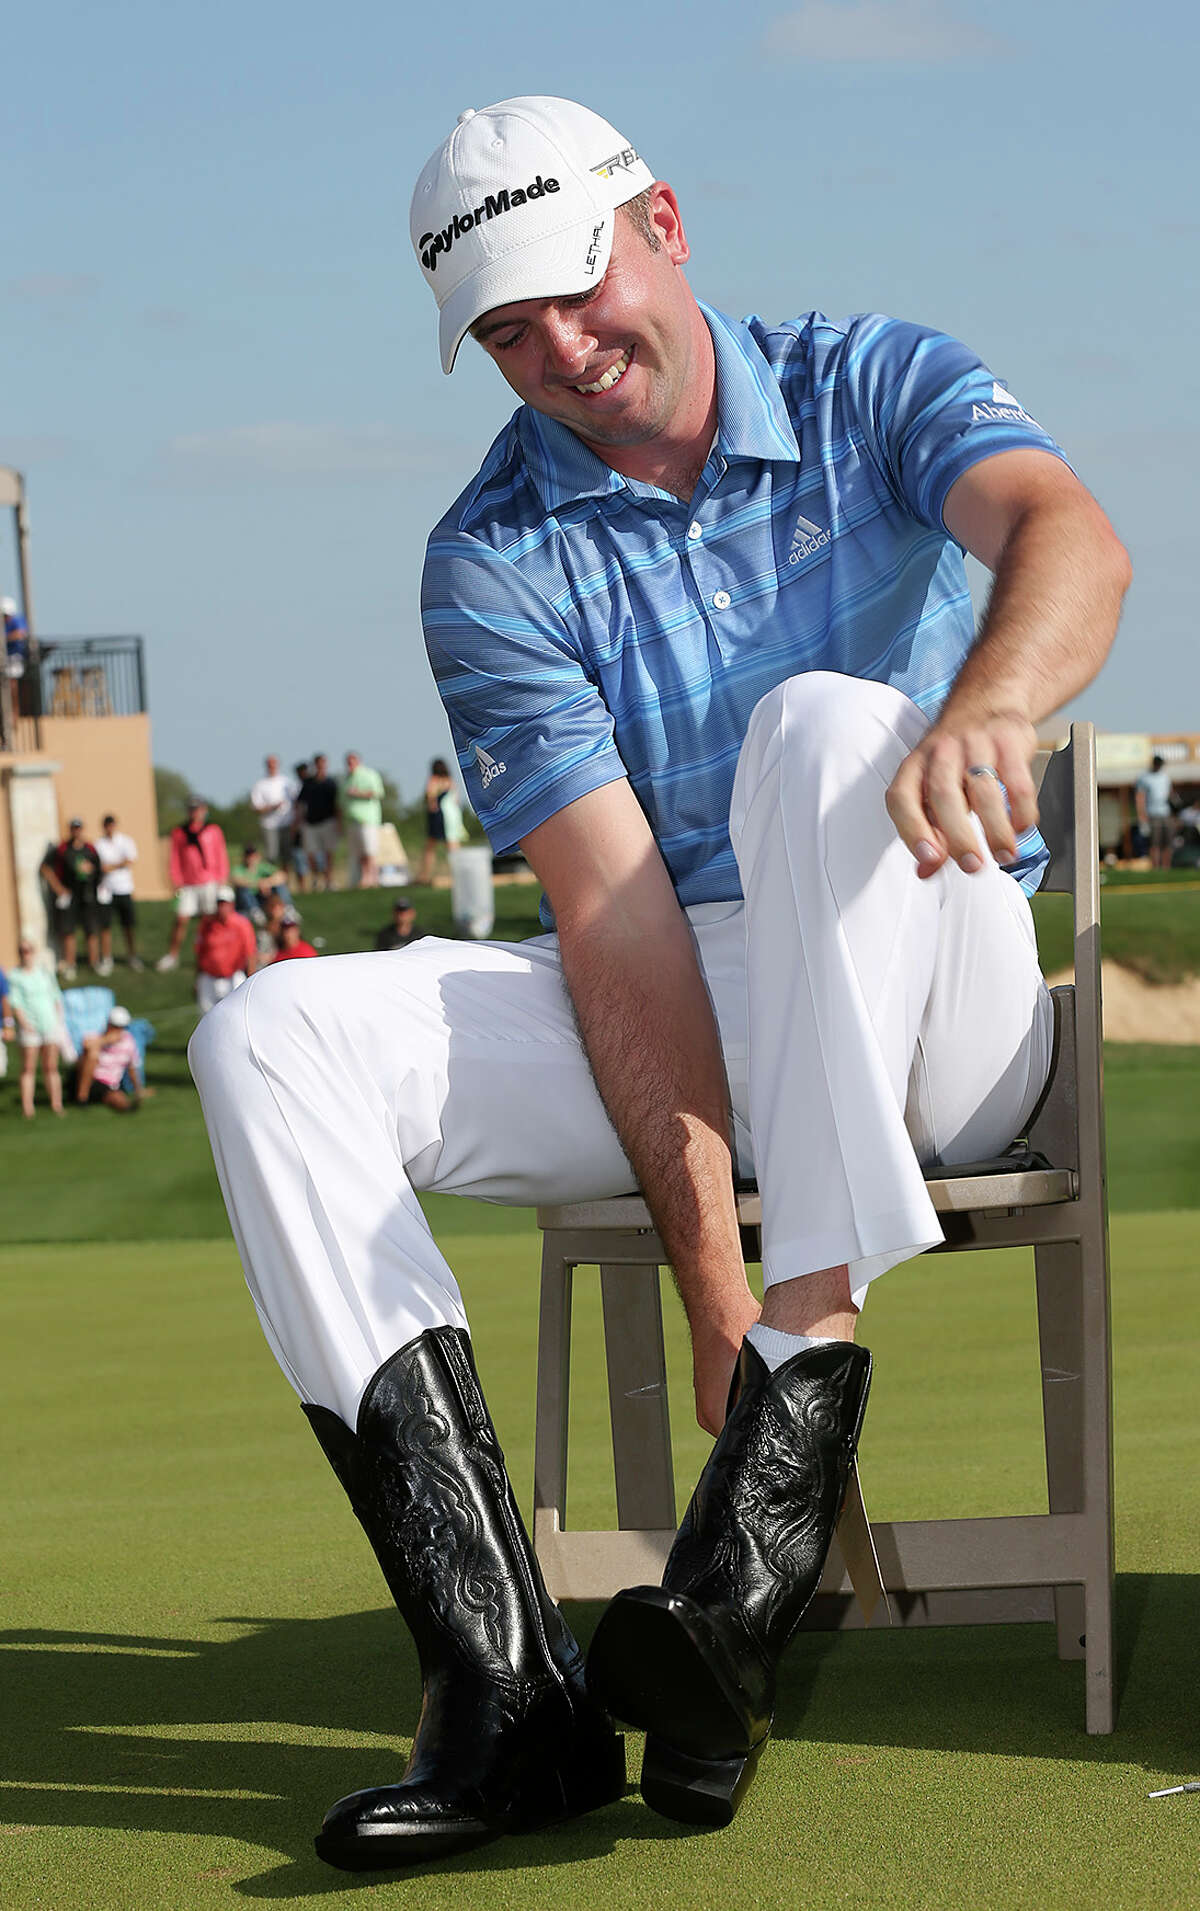 The 2013 Valero Texas Open Champion Martin Laird, of Glasgow, Scotland, puts on cowboy boots that were part of prize after winning the tournament, Sunday, April 7, 2013. Laird also took home $1,116,000.